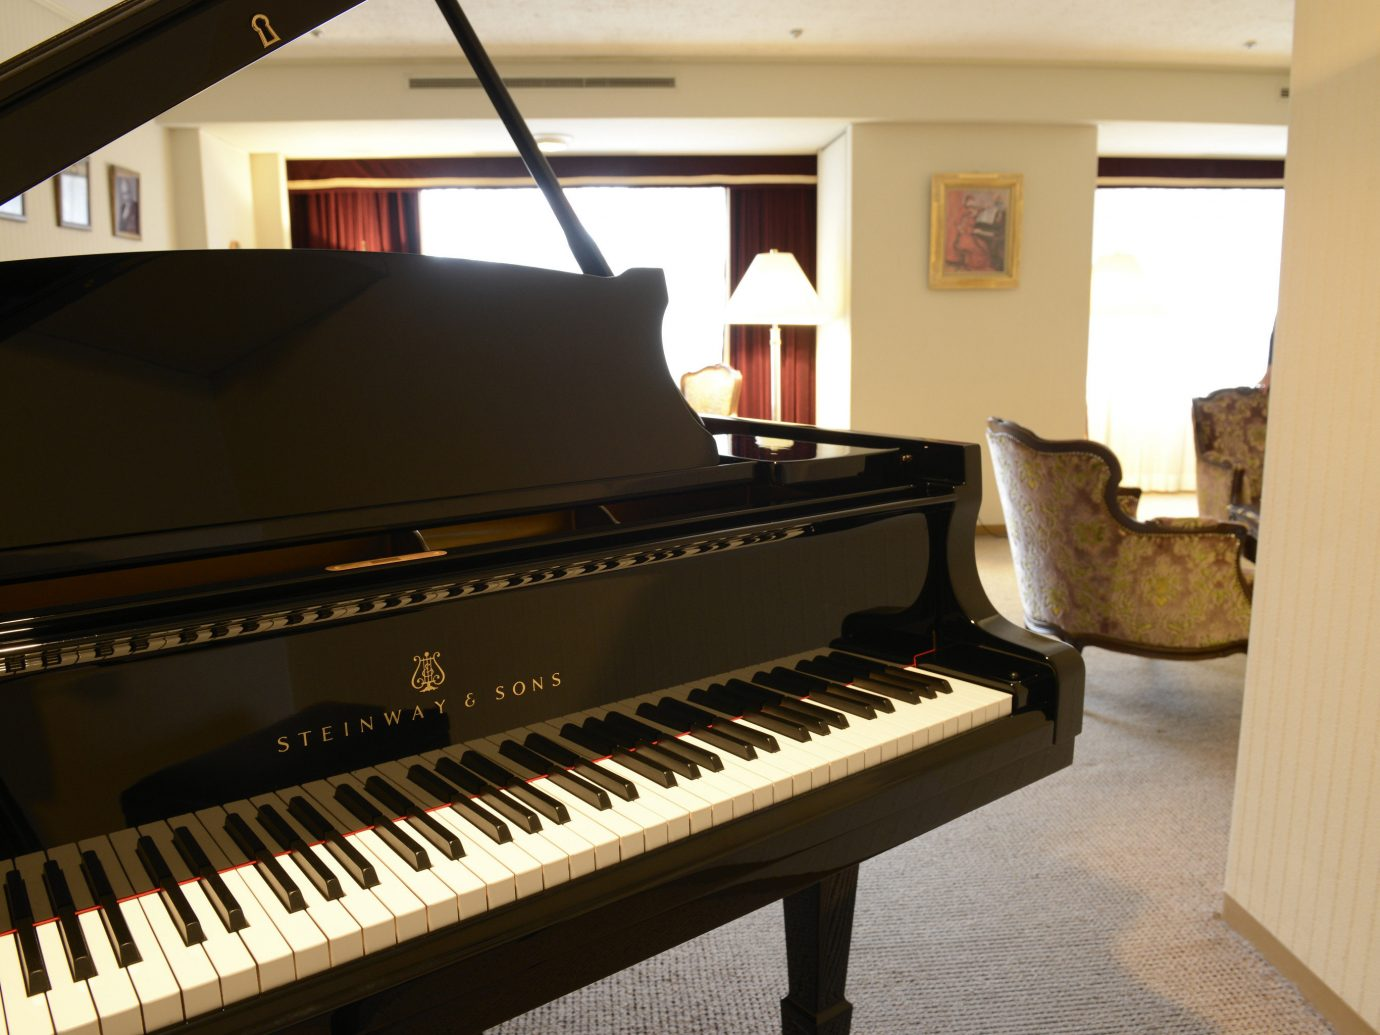 Hotels Japan Tokyo Music piano indoor wall floor musical instrument digital piano string instrument player piano electronic device technology keyboard fortepiano electric piano celesta luxury vehicle musical keyboard electronic instrument computer component clavier furniture